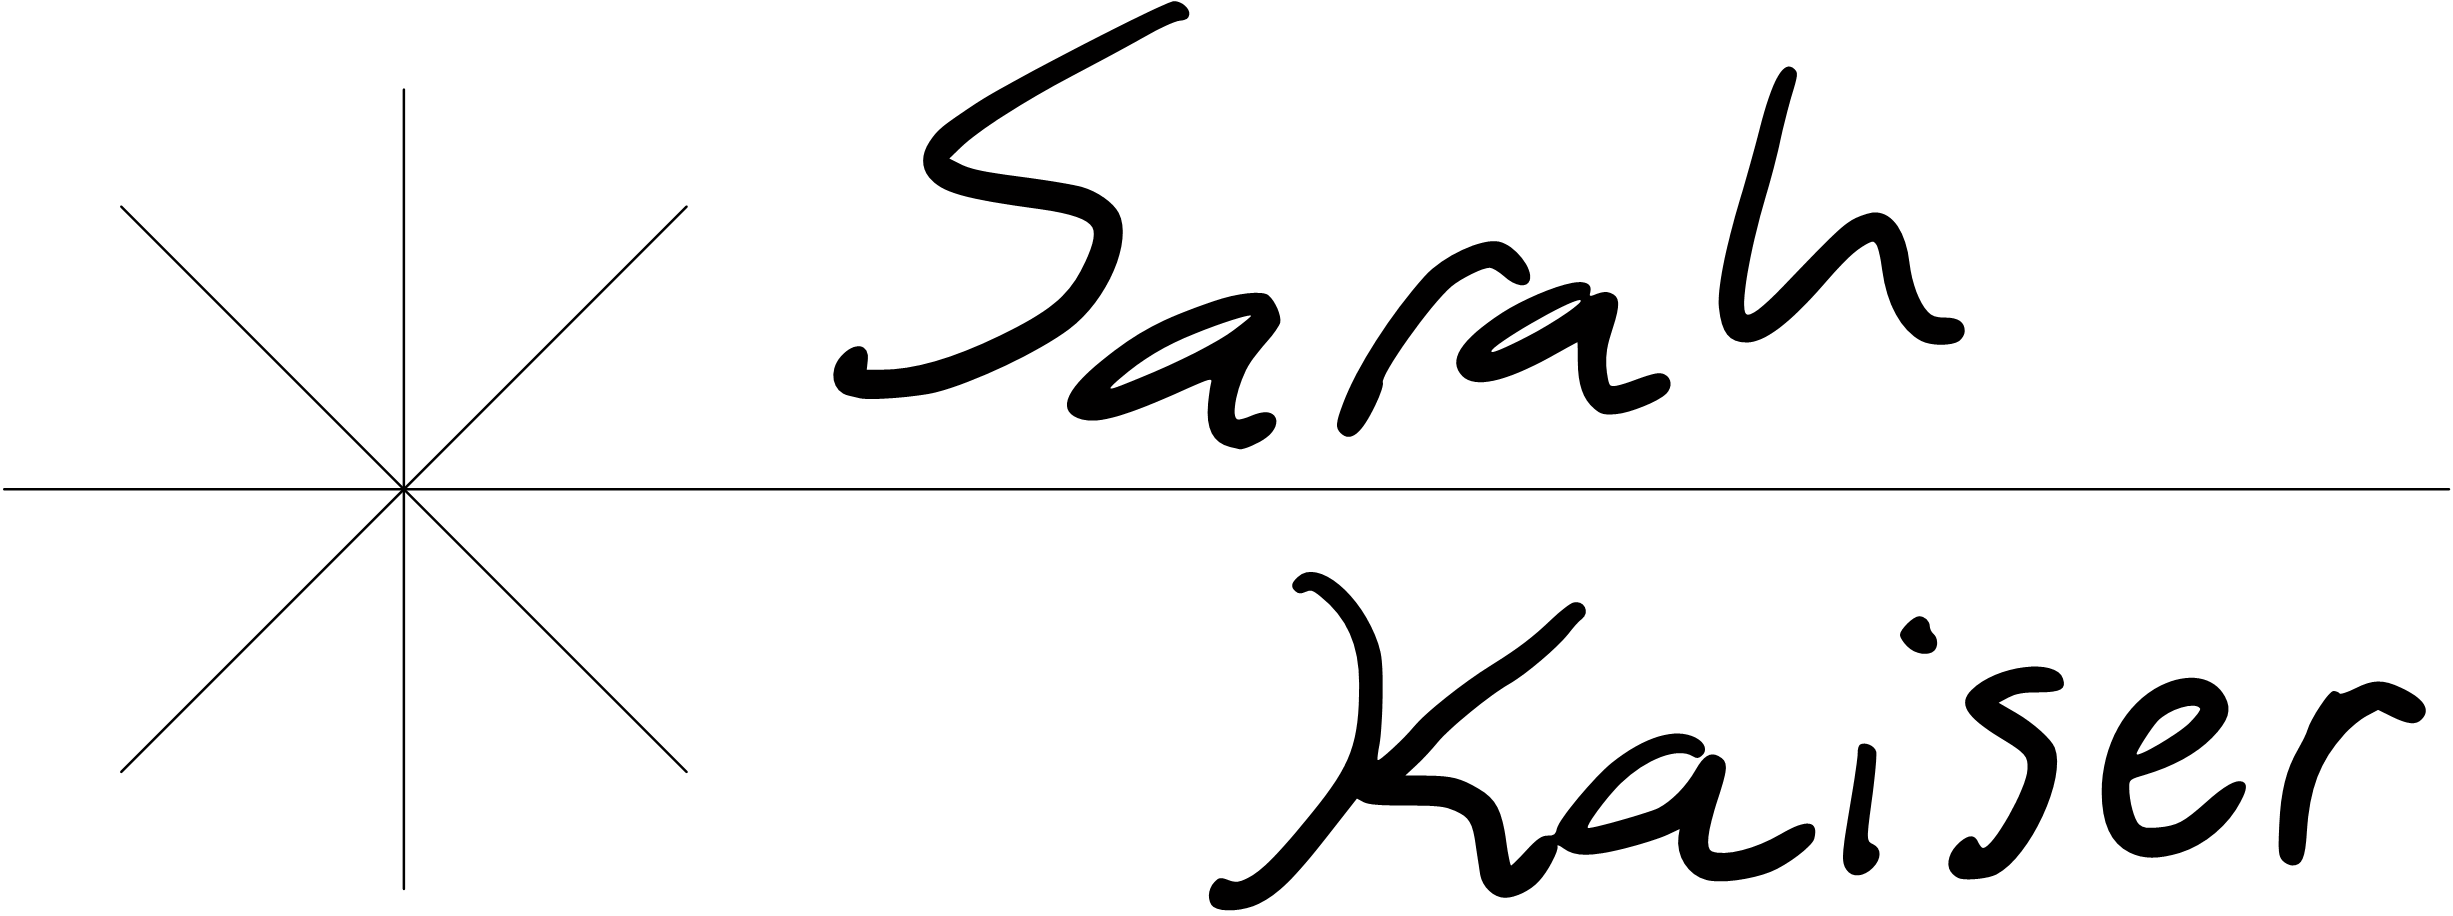 OneNote signature with straight lines